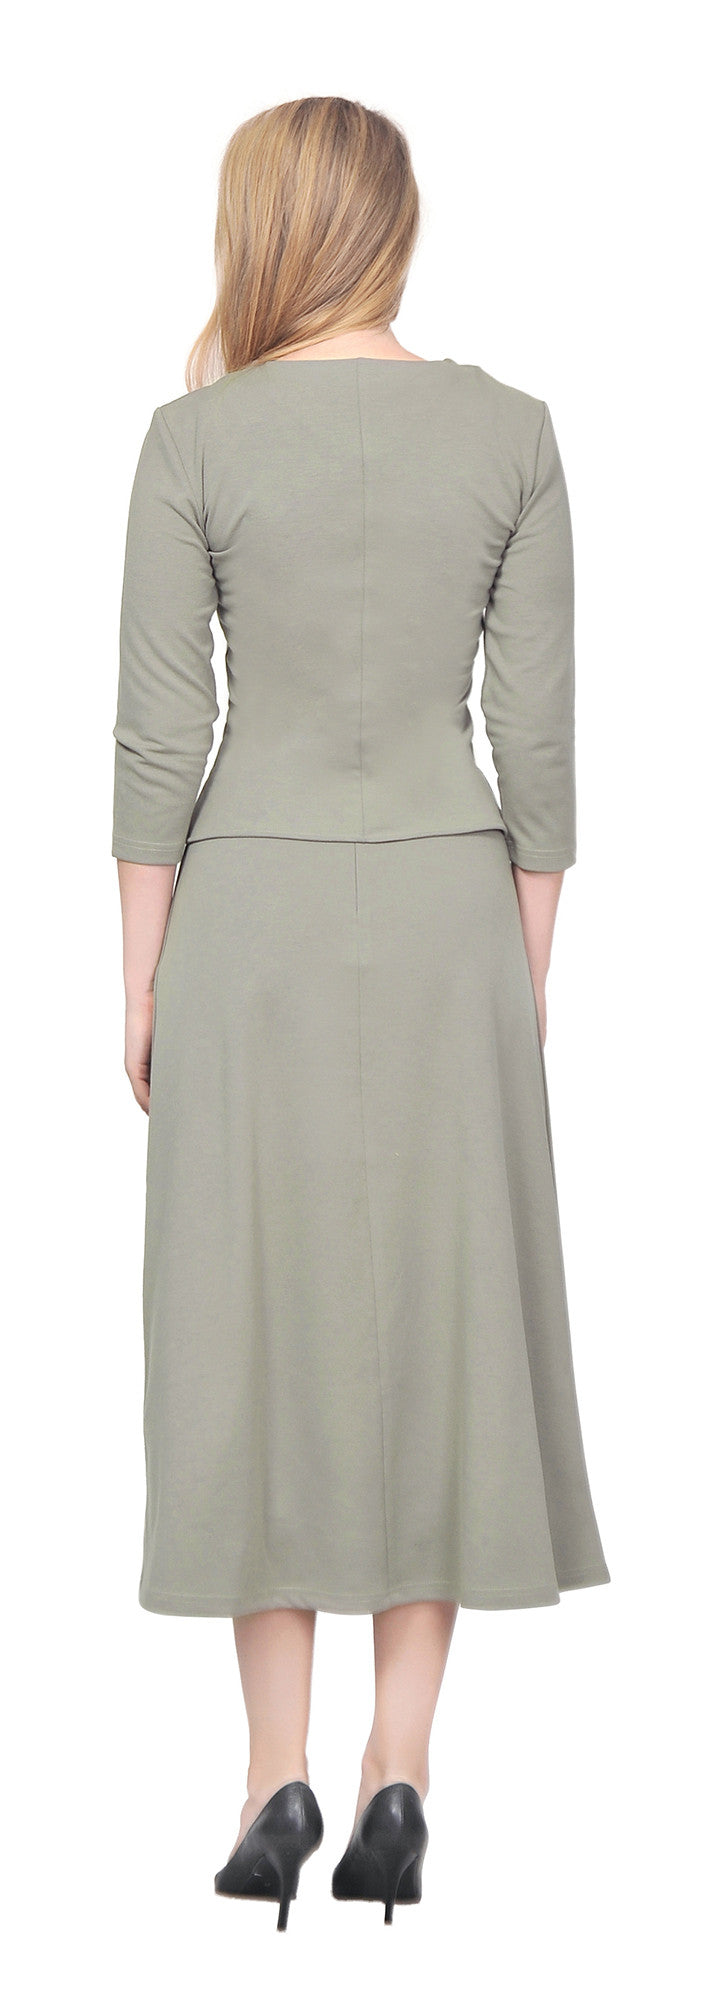 Women's Casual Office Relaxed Shirt Skirt Suit Set